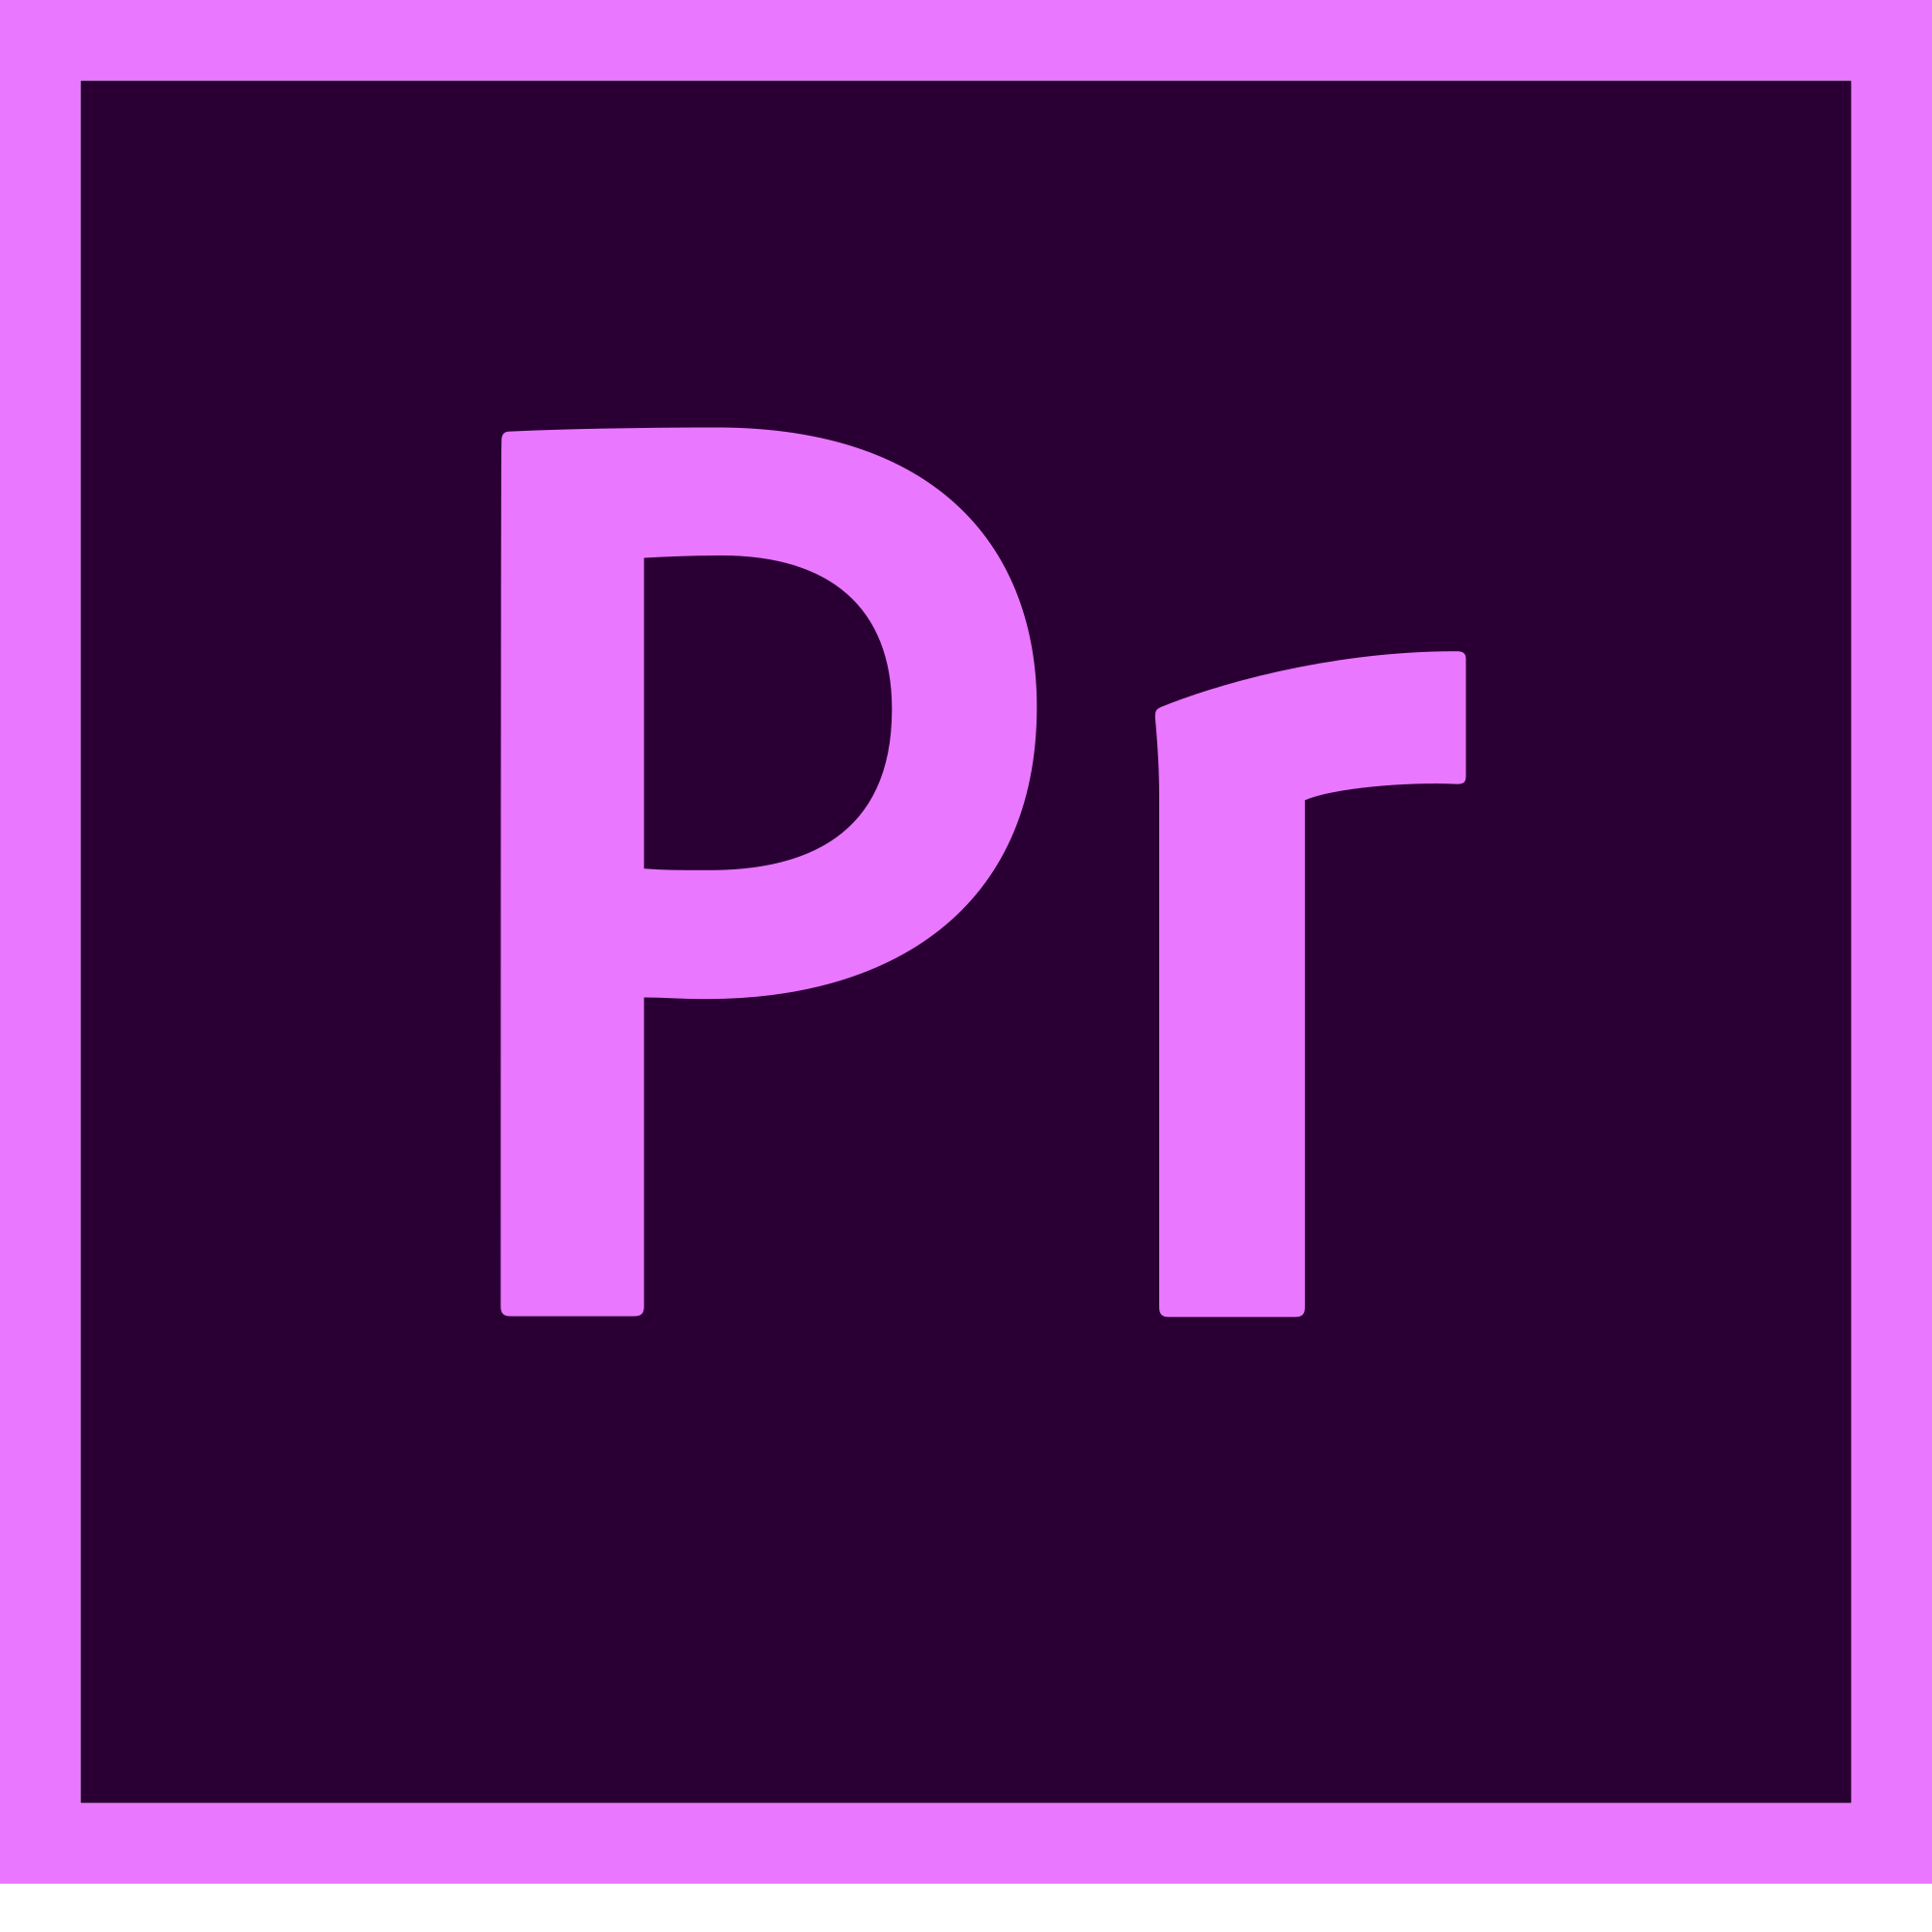 Will Create,  Edit,  convert quality of videos with Adobe Premiere Pro,  any edits,  any effects